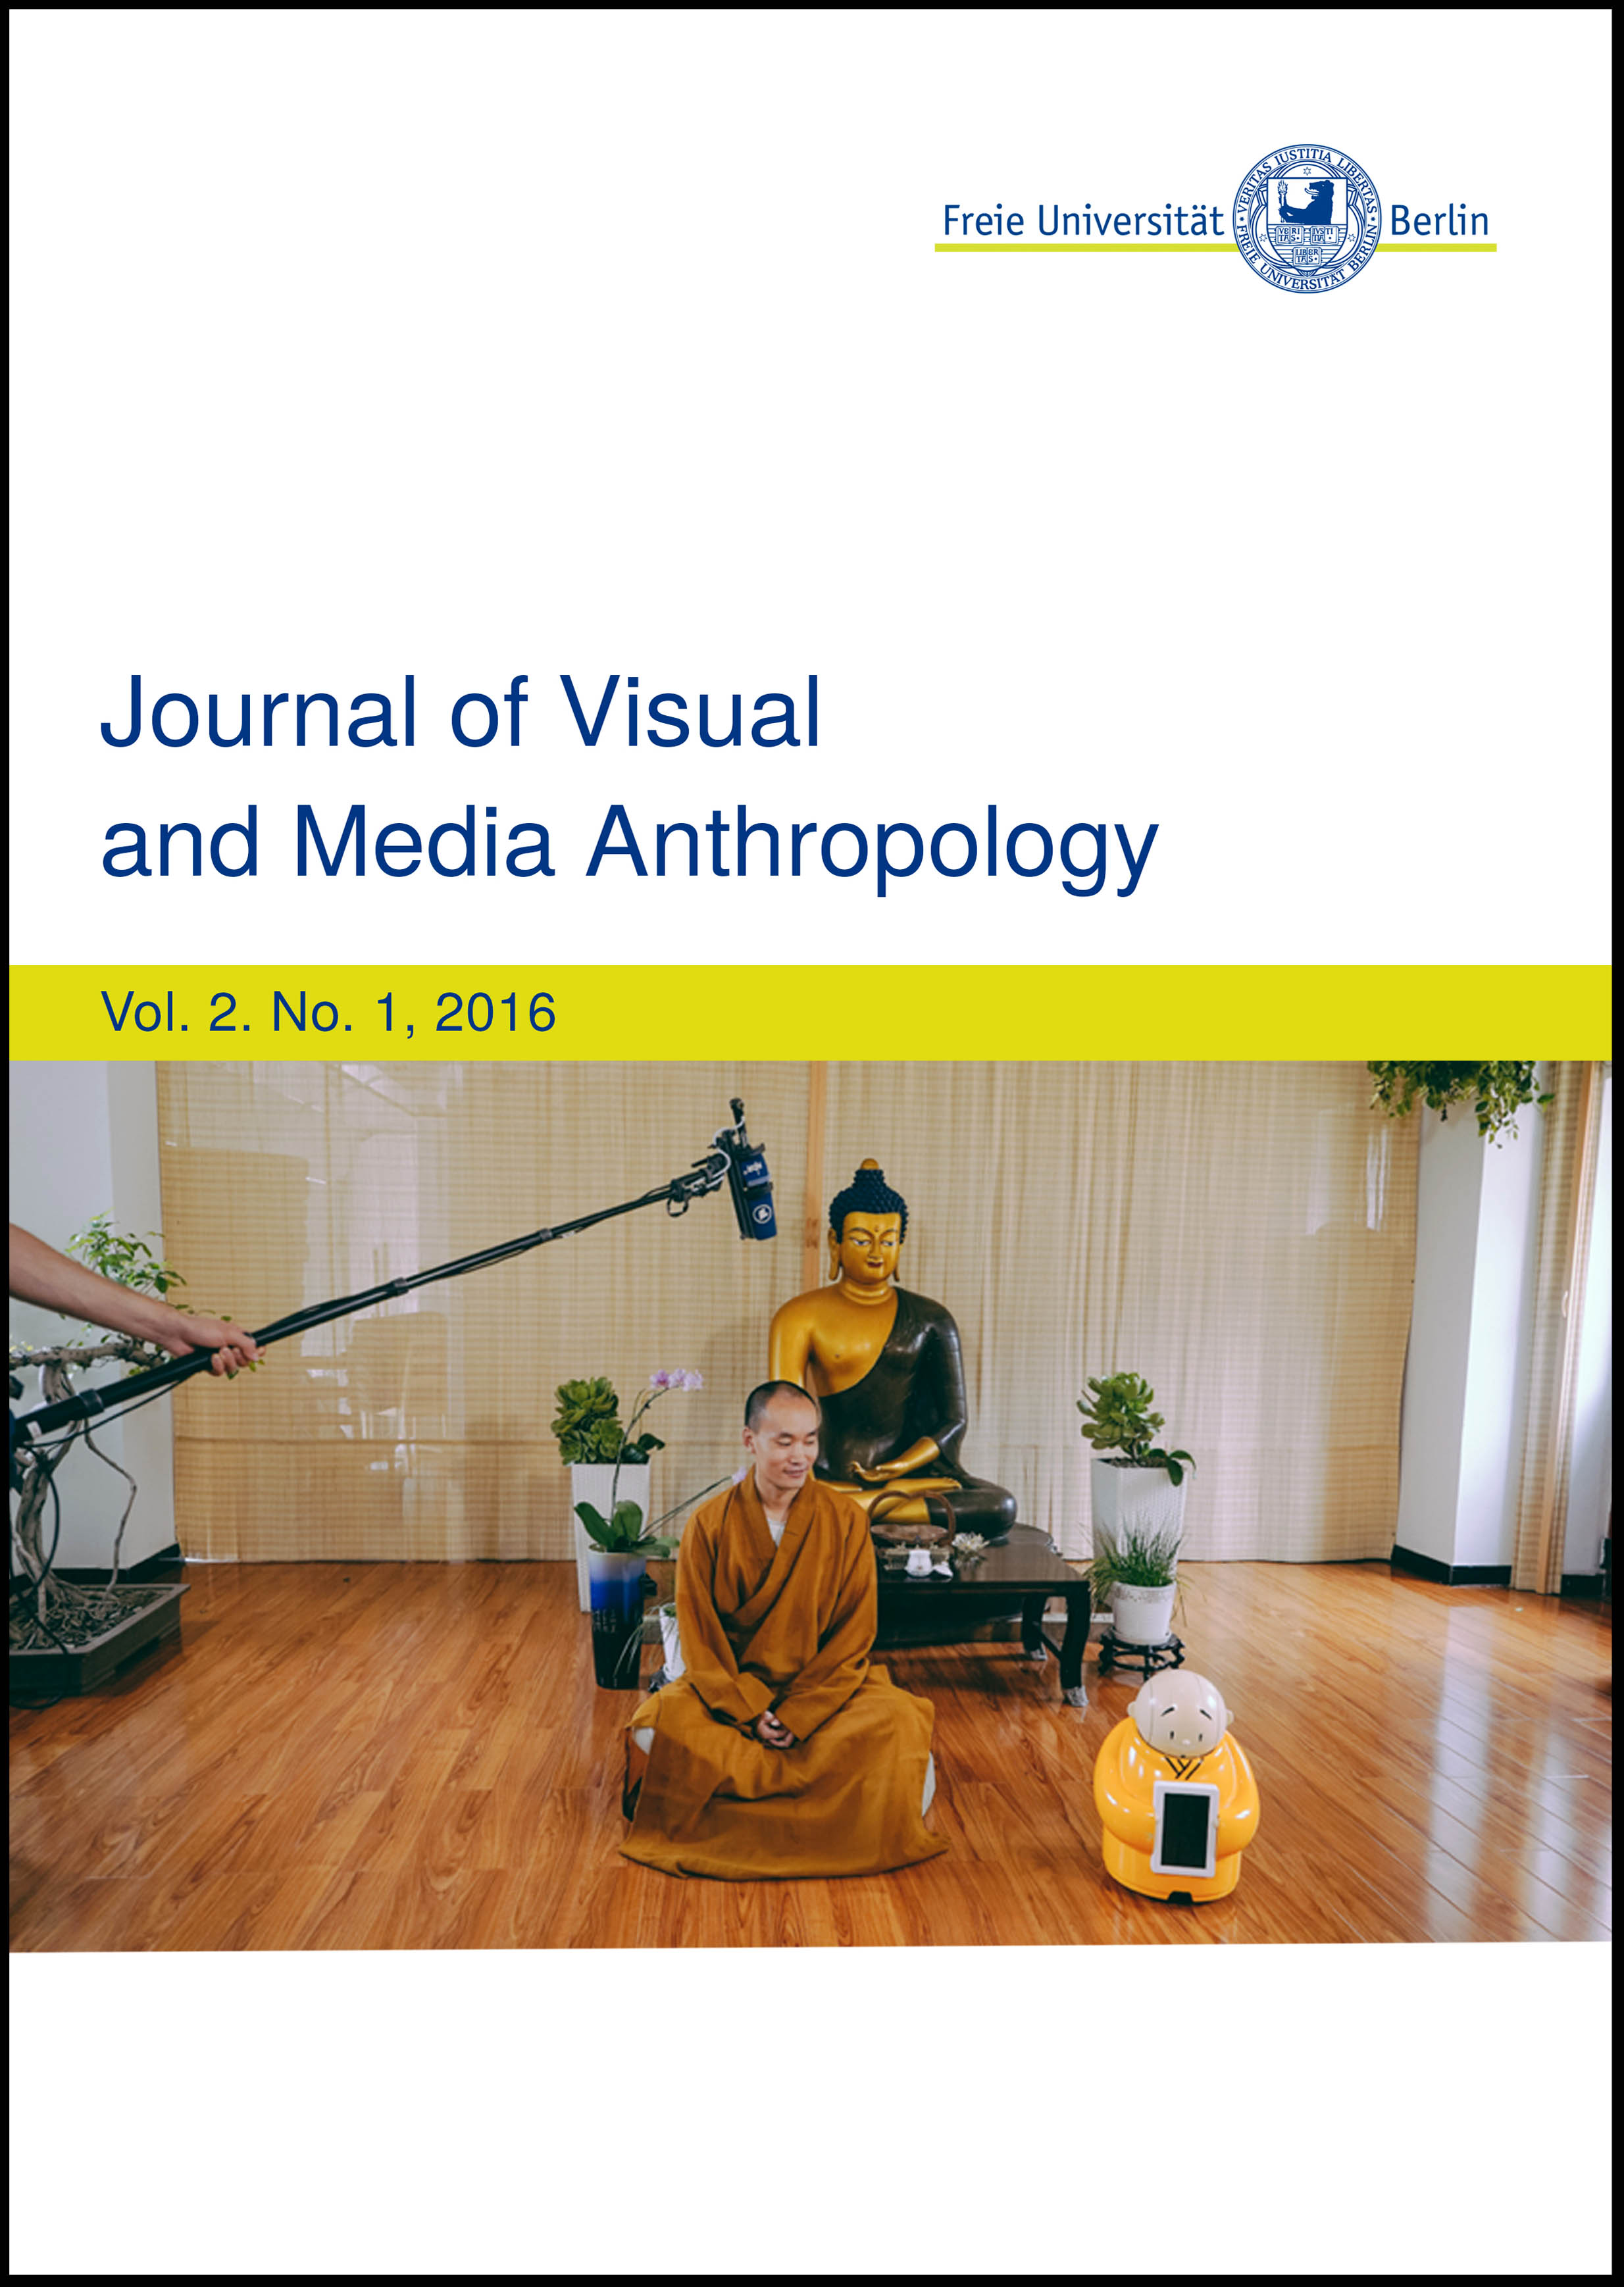 JOURNAL OF VISUAL AND MEDIA ANTHROPOLOGY - The sophomore issue of the Journal of Visual and Media Anthropology consists of four articles and six short ethnographic films. Reflecting the expanding diversity and variety of research fields in Digital Anthropology, these works present new research topics beyond what has previously been thought of as digitalization processes. Specifically, this journal contains the topics of religion, games and play, urban mobility, community development, online dating and big data.EDITORS: PROF. DR. URTE UNDINE FRÖMMING, STEFFEN, KÖHN, MIKE TERRY.HERE